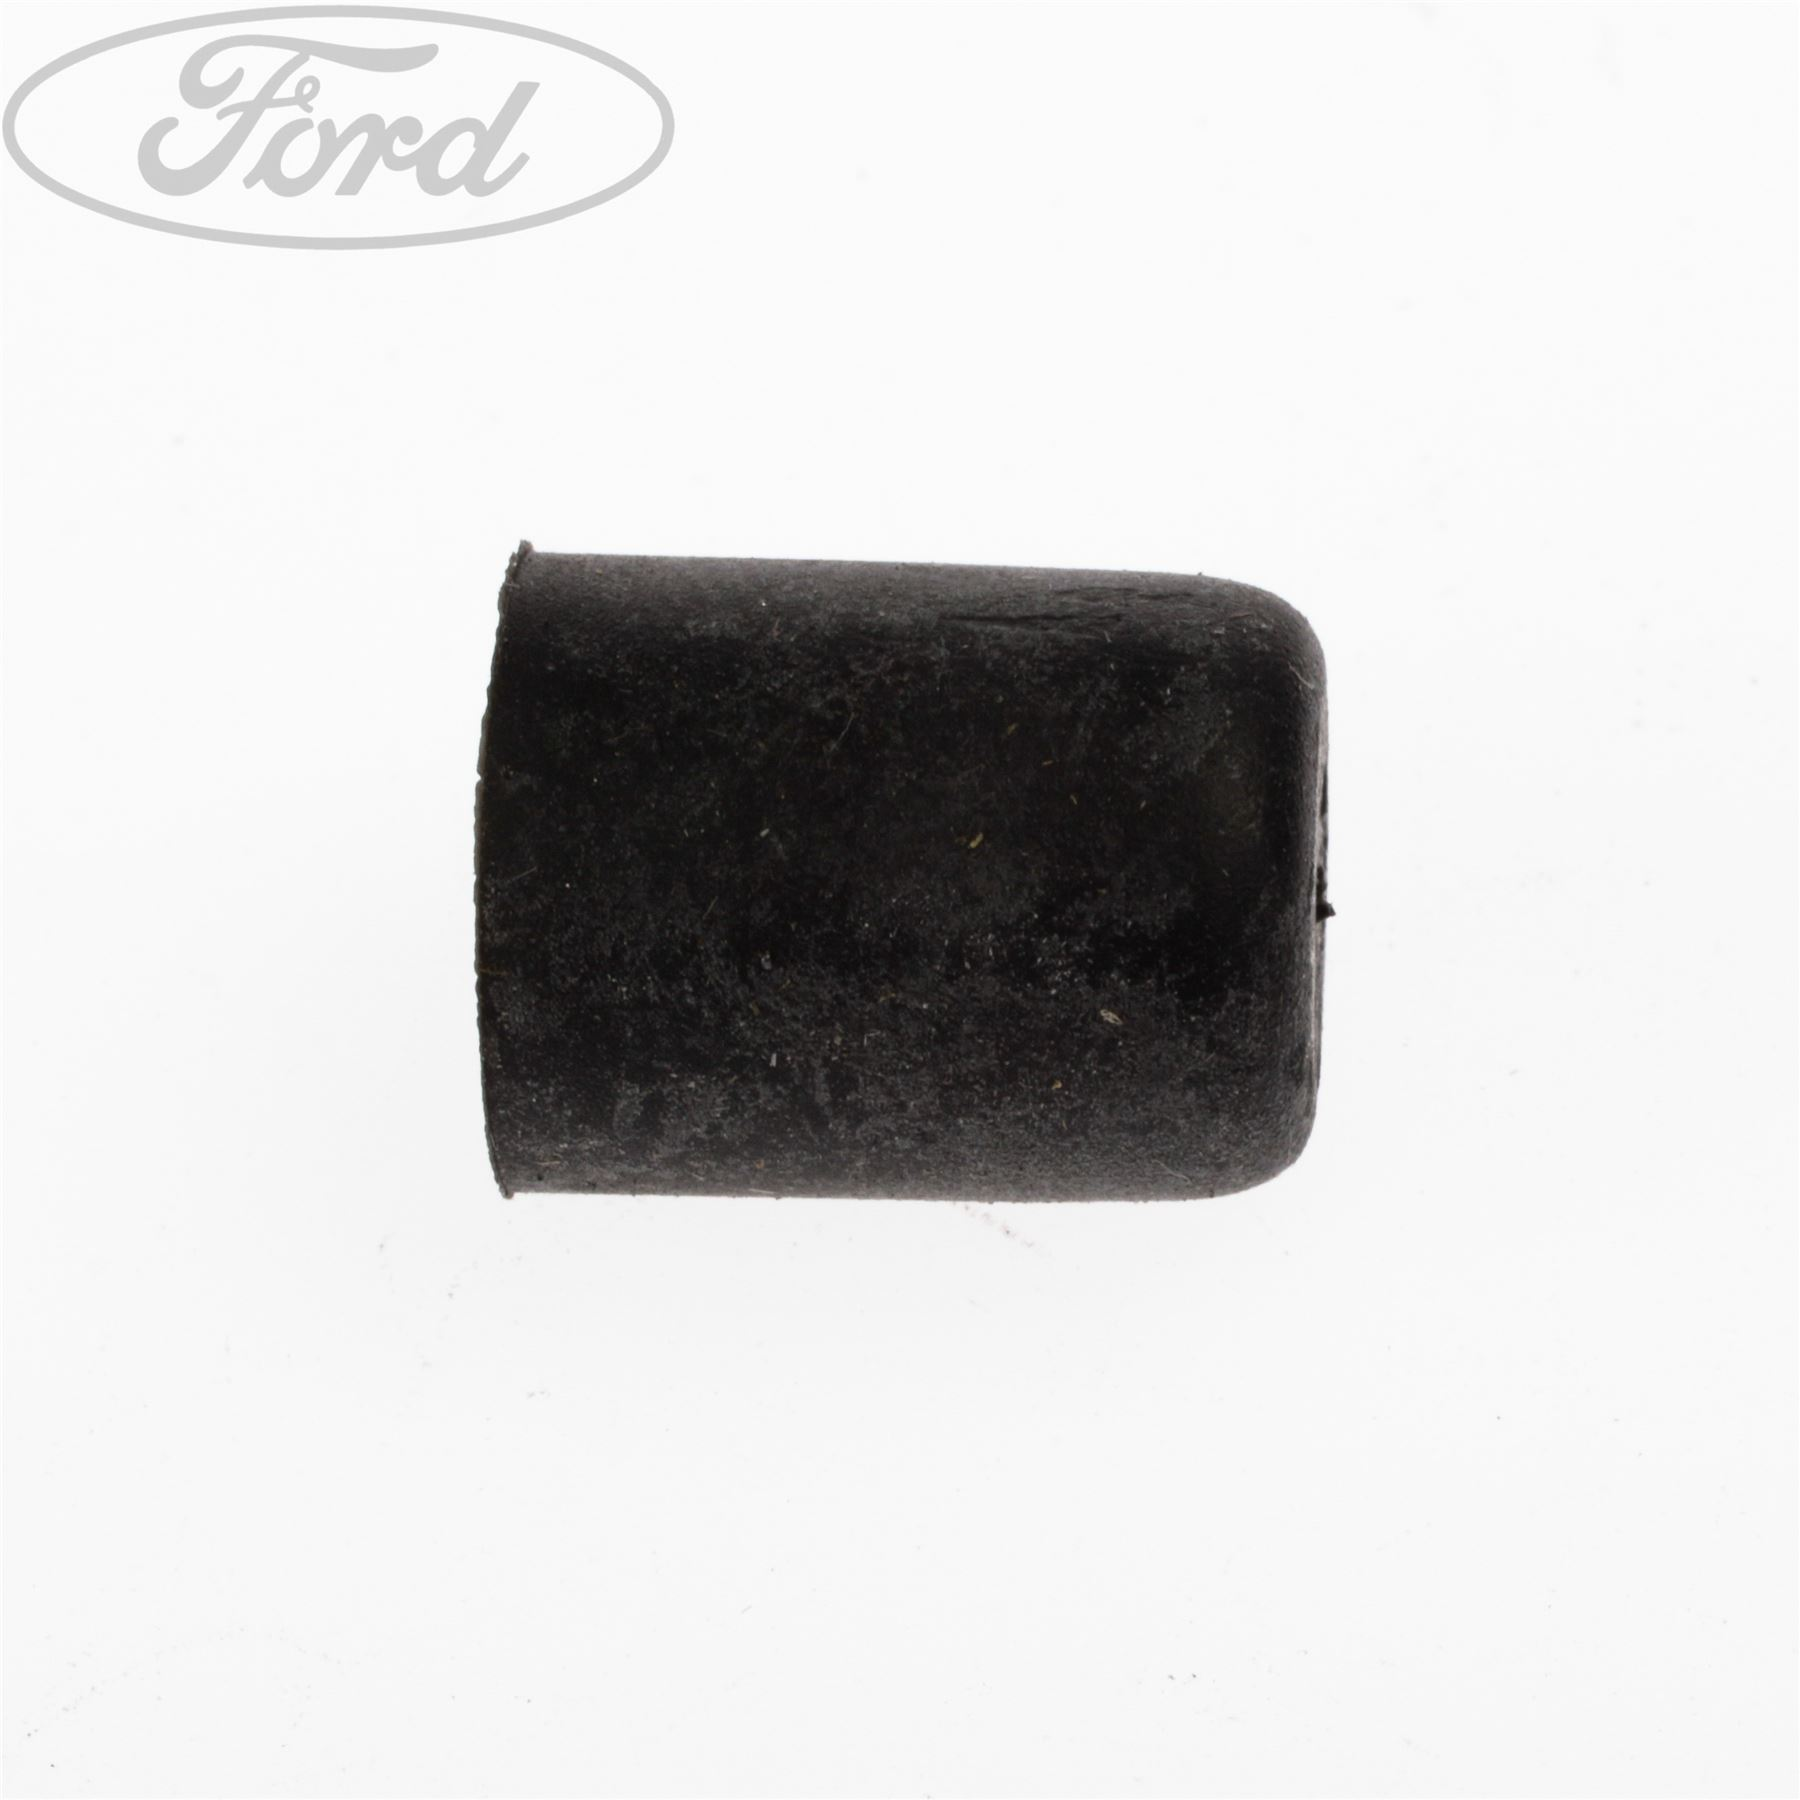 hight resolution of details about genuine ford fiesta mk6 fusion battery cables horn cap 1144661